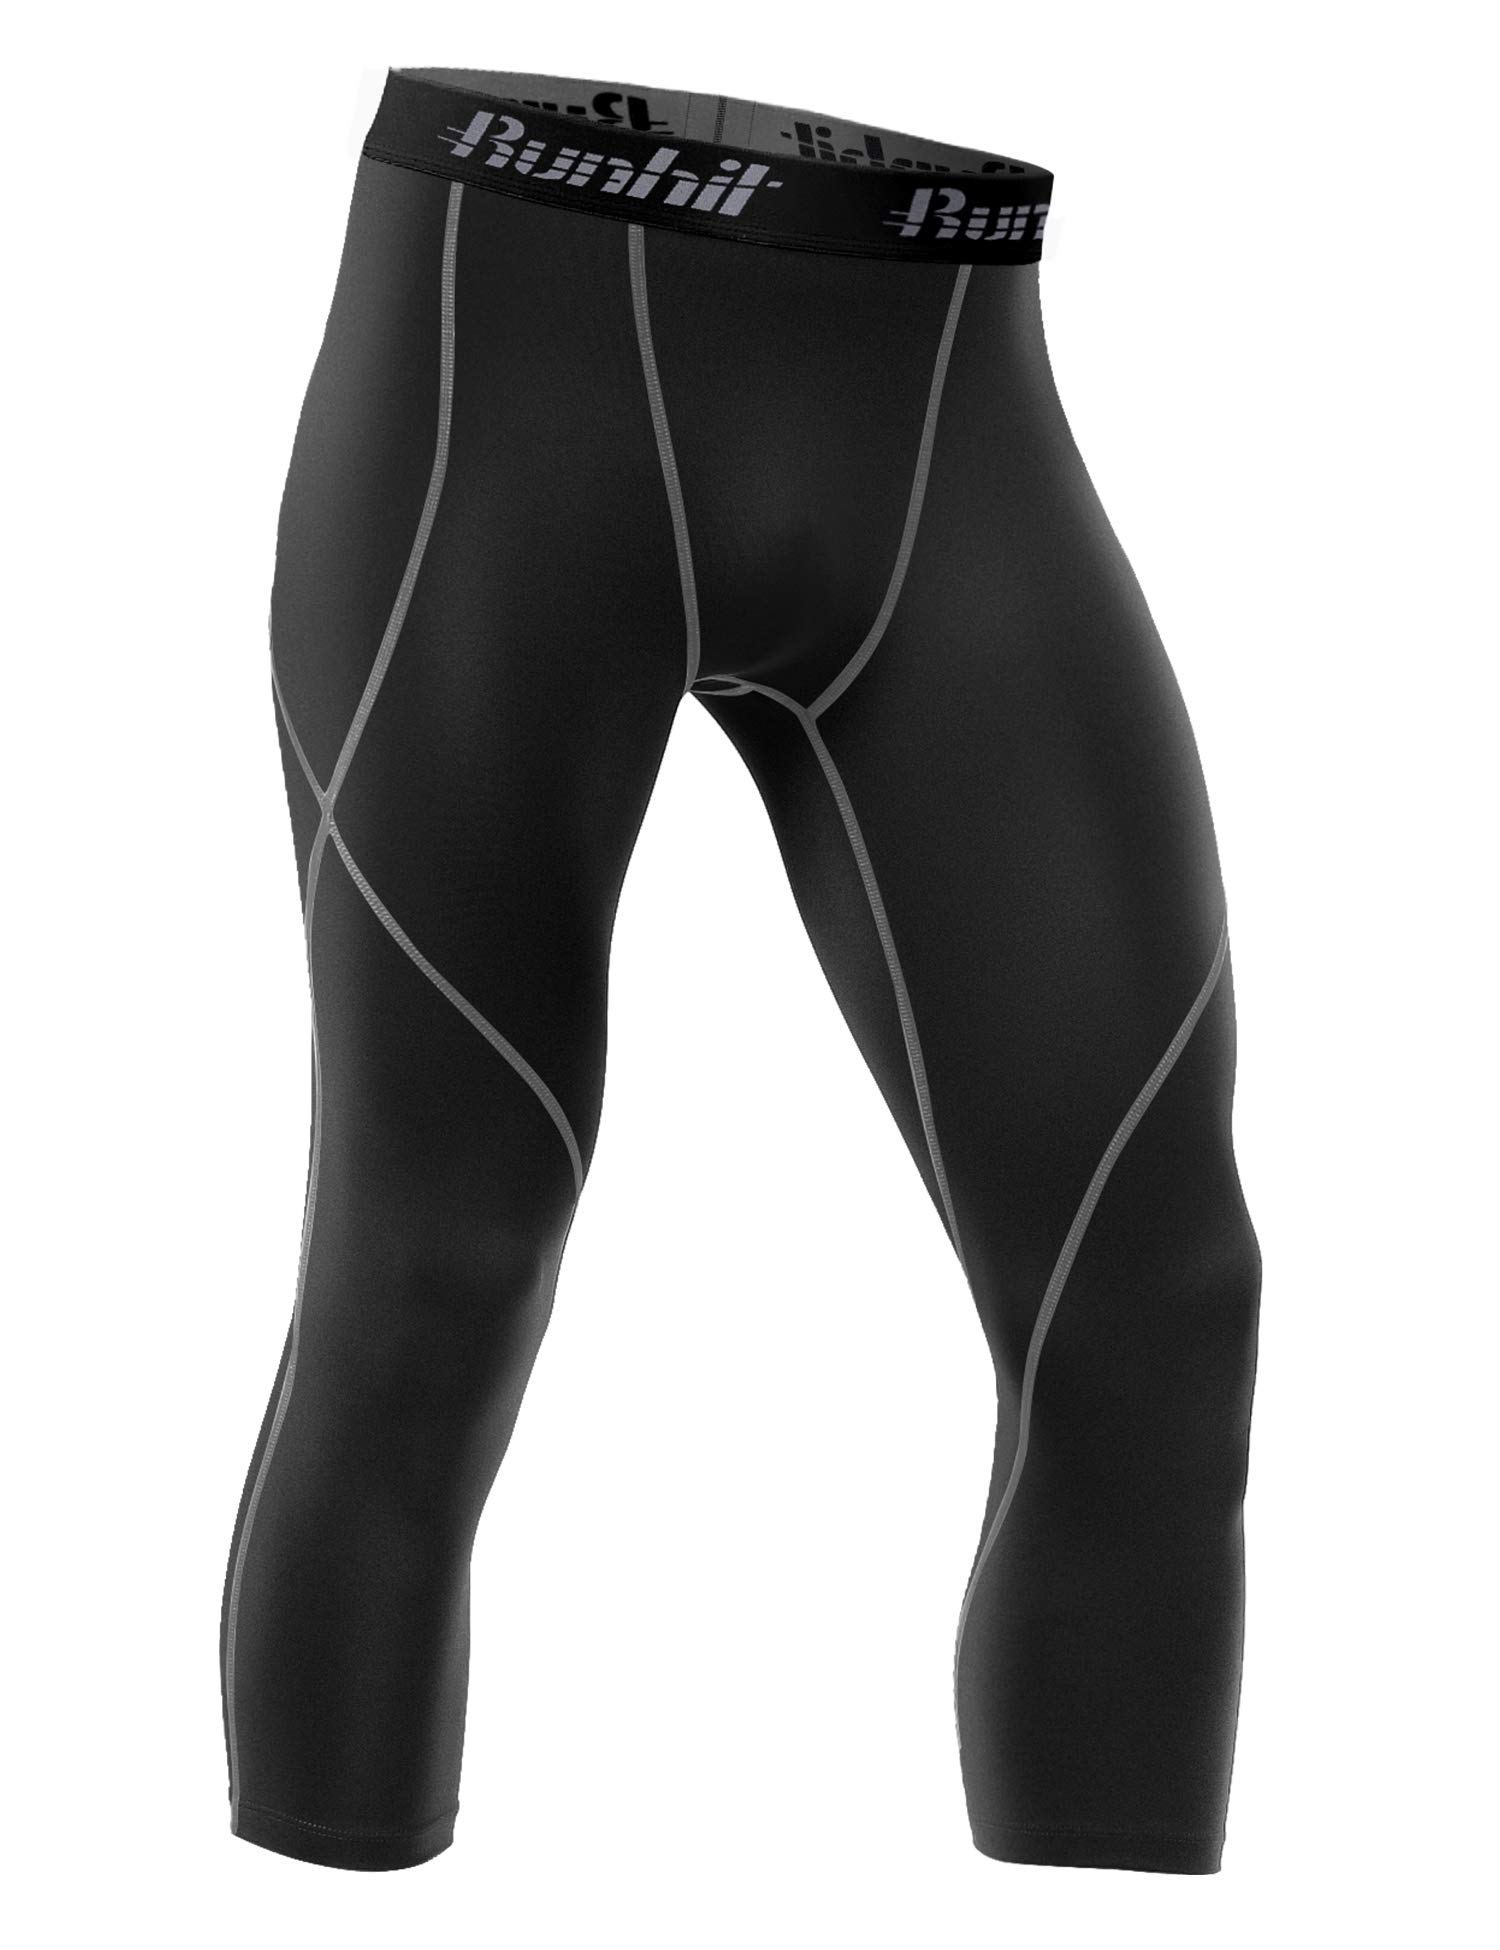 Runhit Mens 3/4 Compression Leggings Pants Capri Shorts Baselayer Cool Dry Sport Tights Black by Runhit